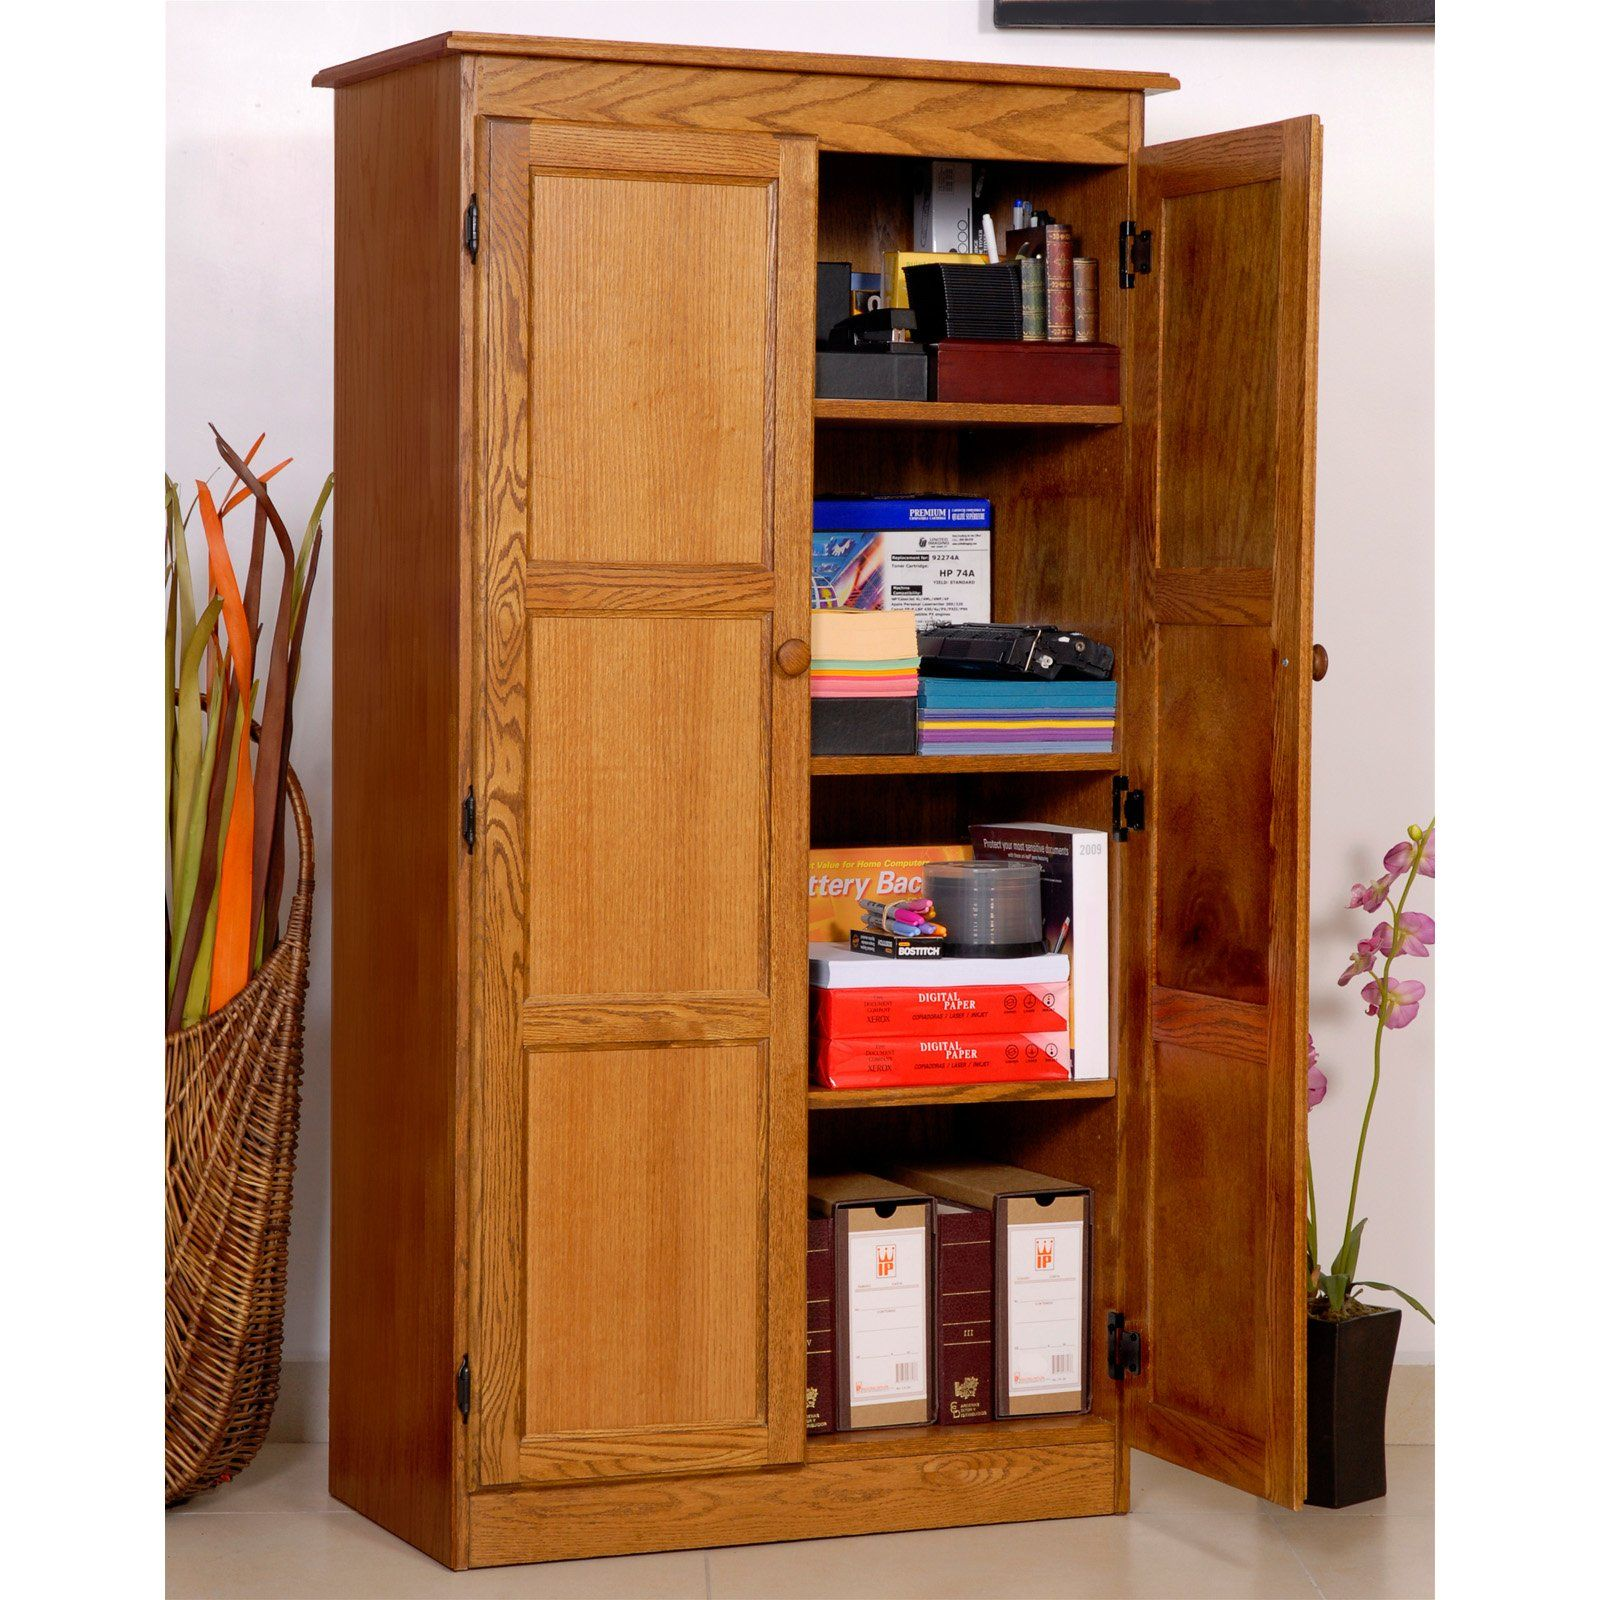 Tall Narrow Storage Cabinets With Doors Tall Cabinet Storage Narrow Storage Cabinet Tall Cabinet With Doors